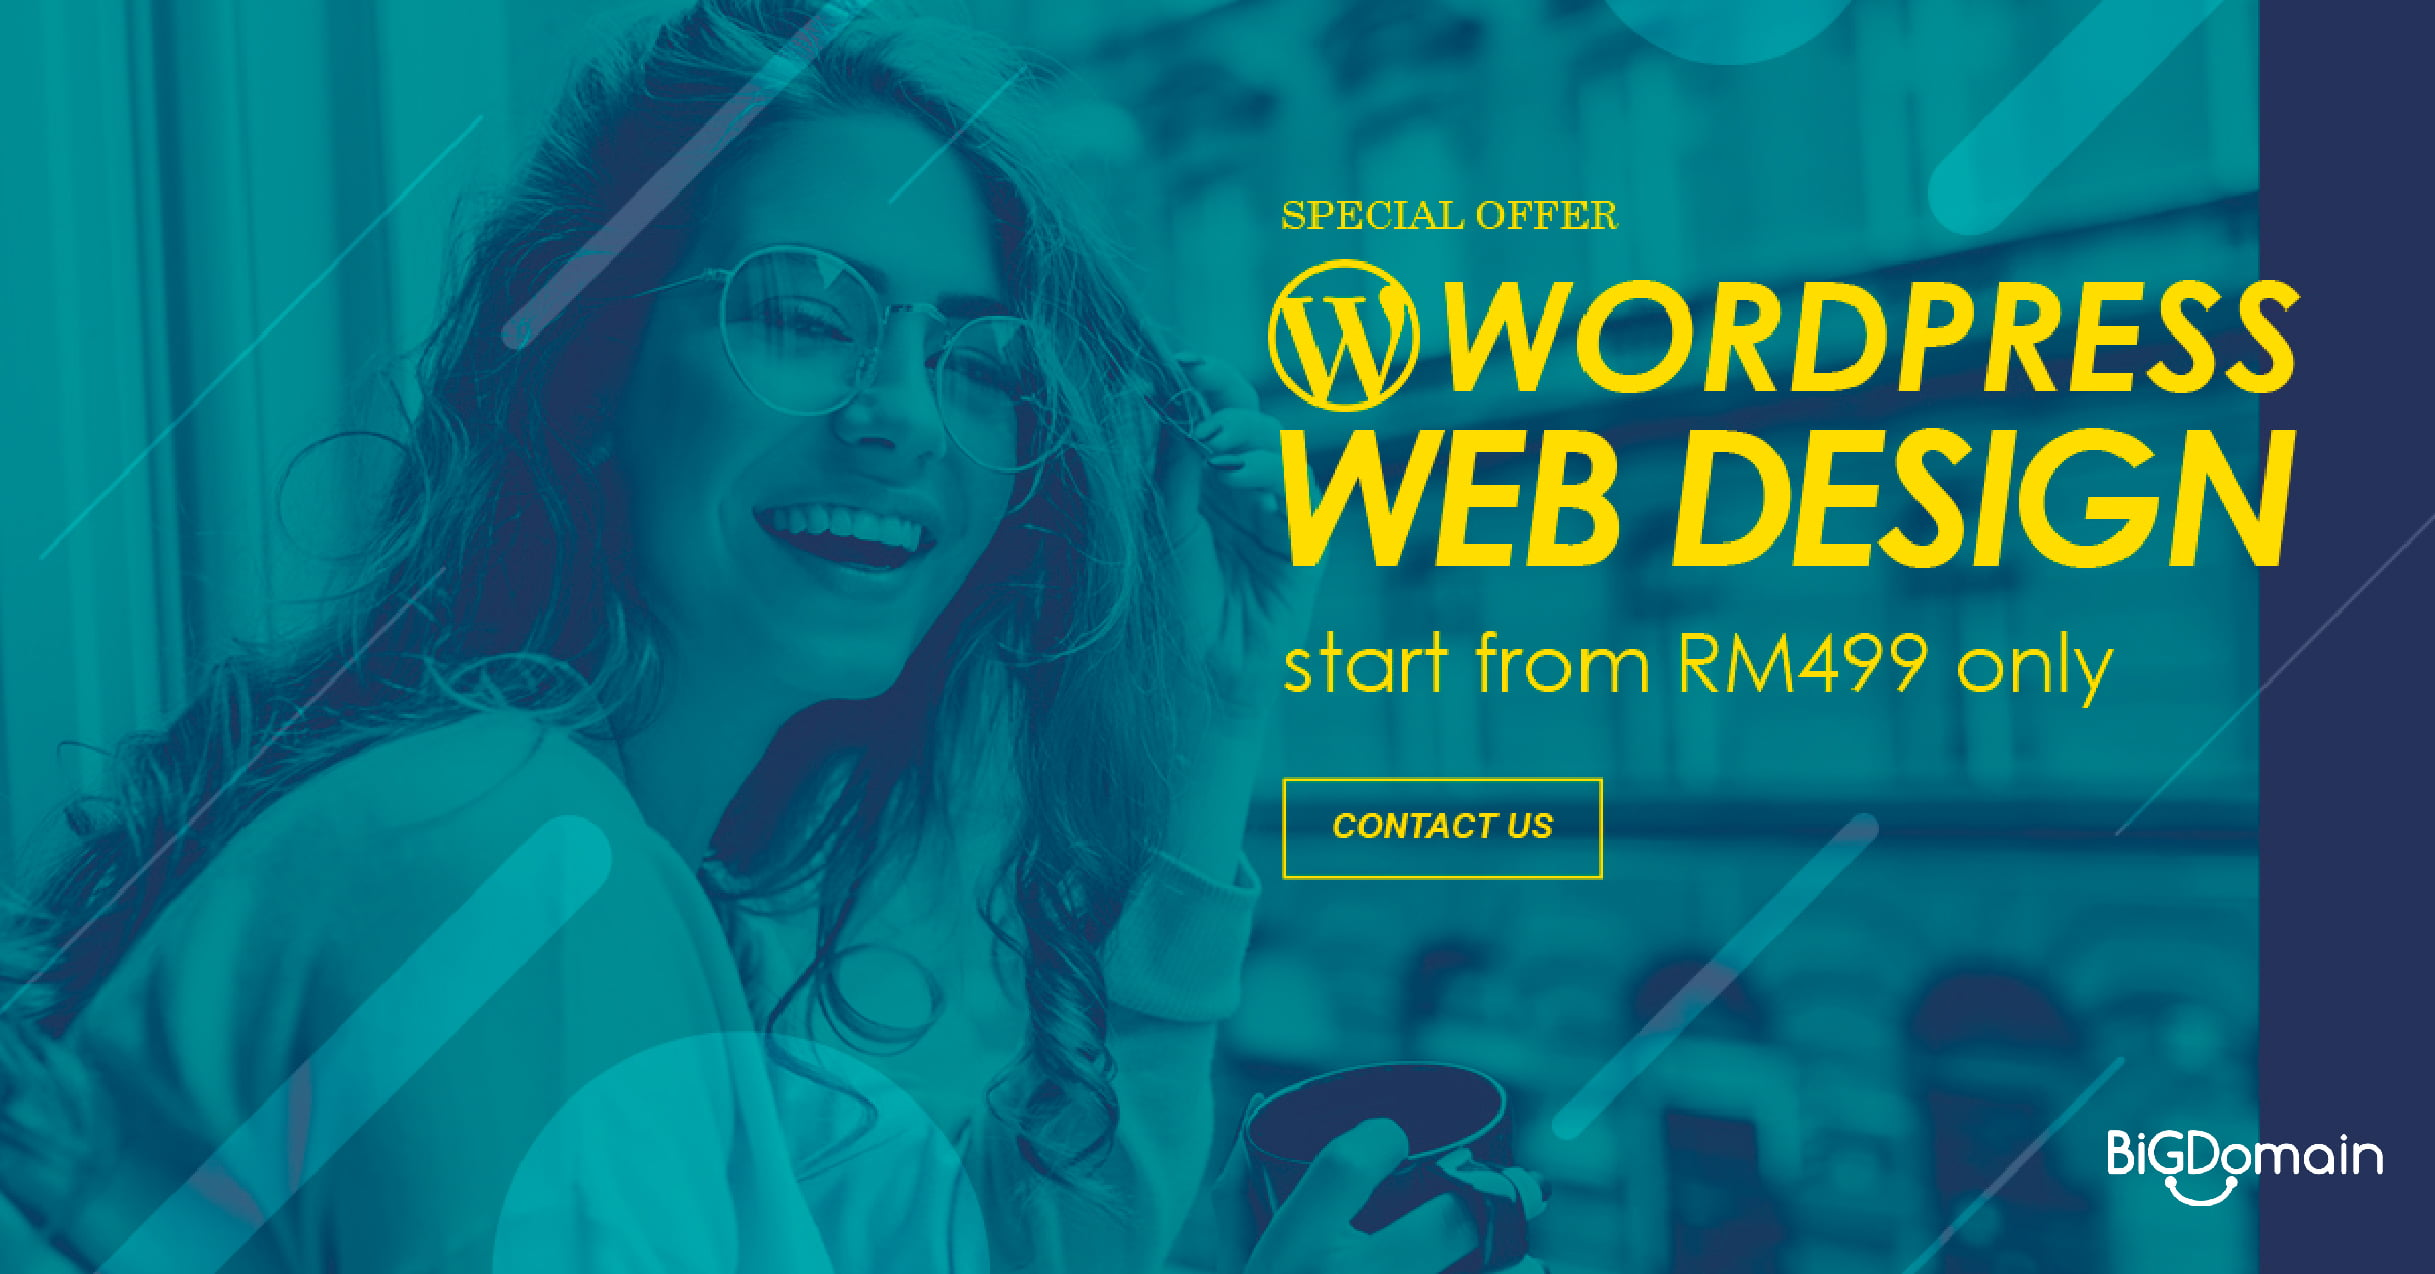 WordPress Web Design promotion start from RM499 only !!!